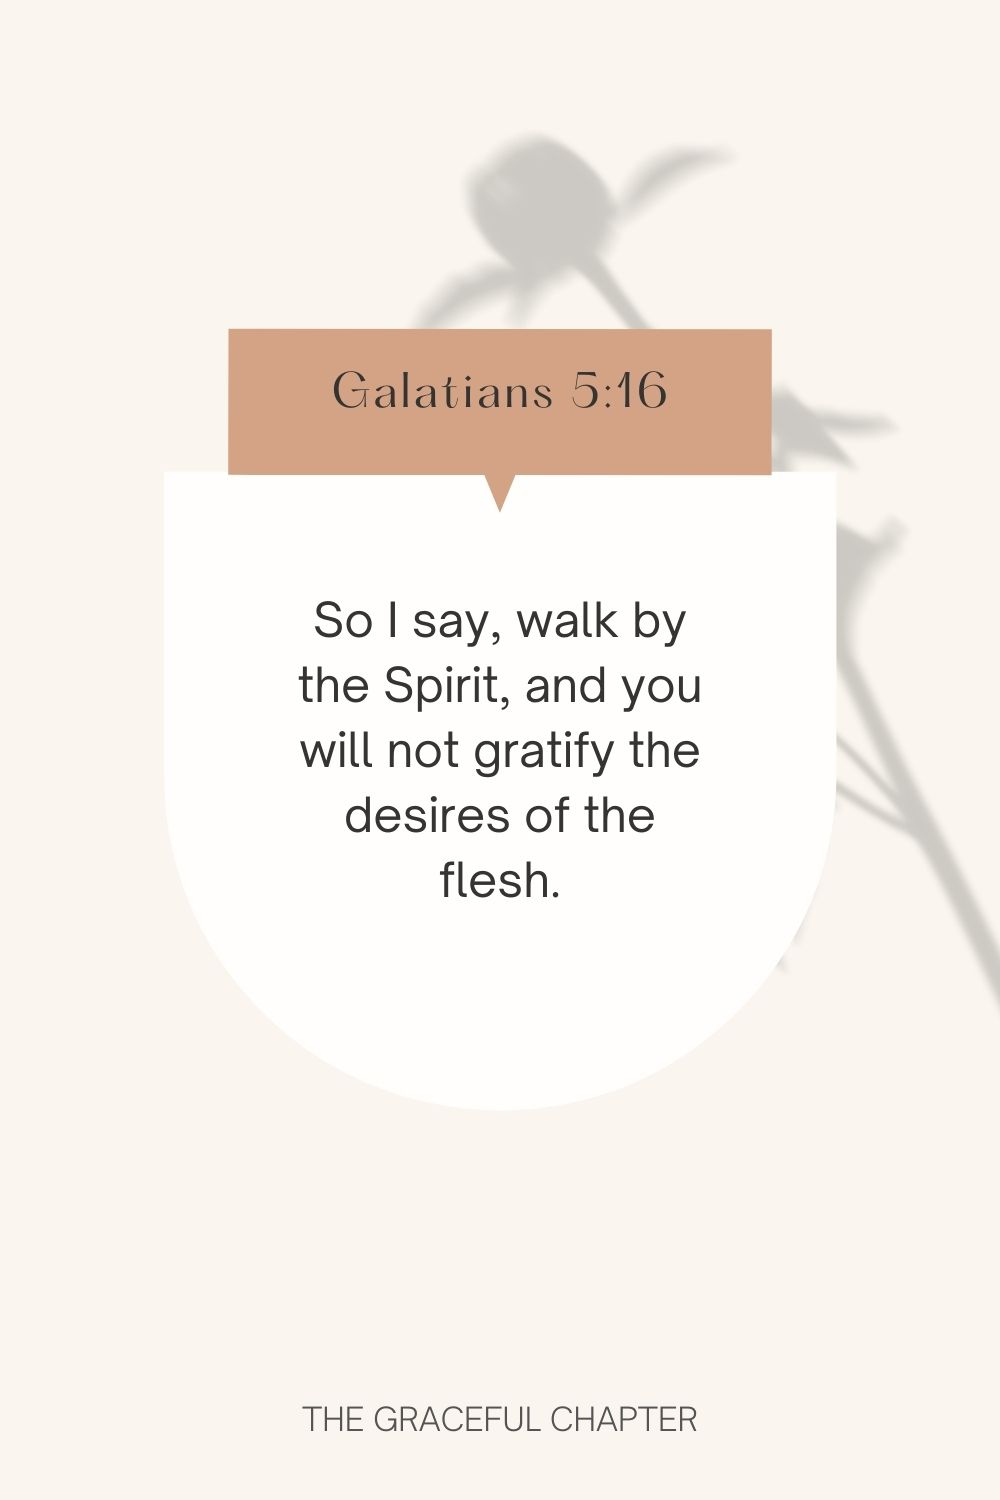 So I say, walk by the Spirit, and you will not gratify the desires of the flesh. Galatians 5:16